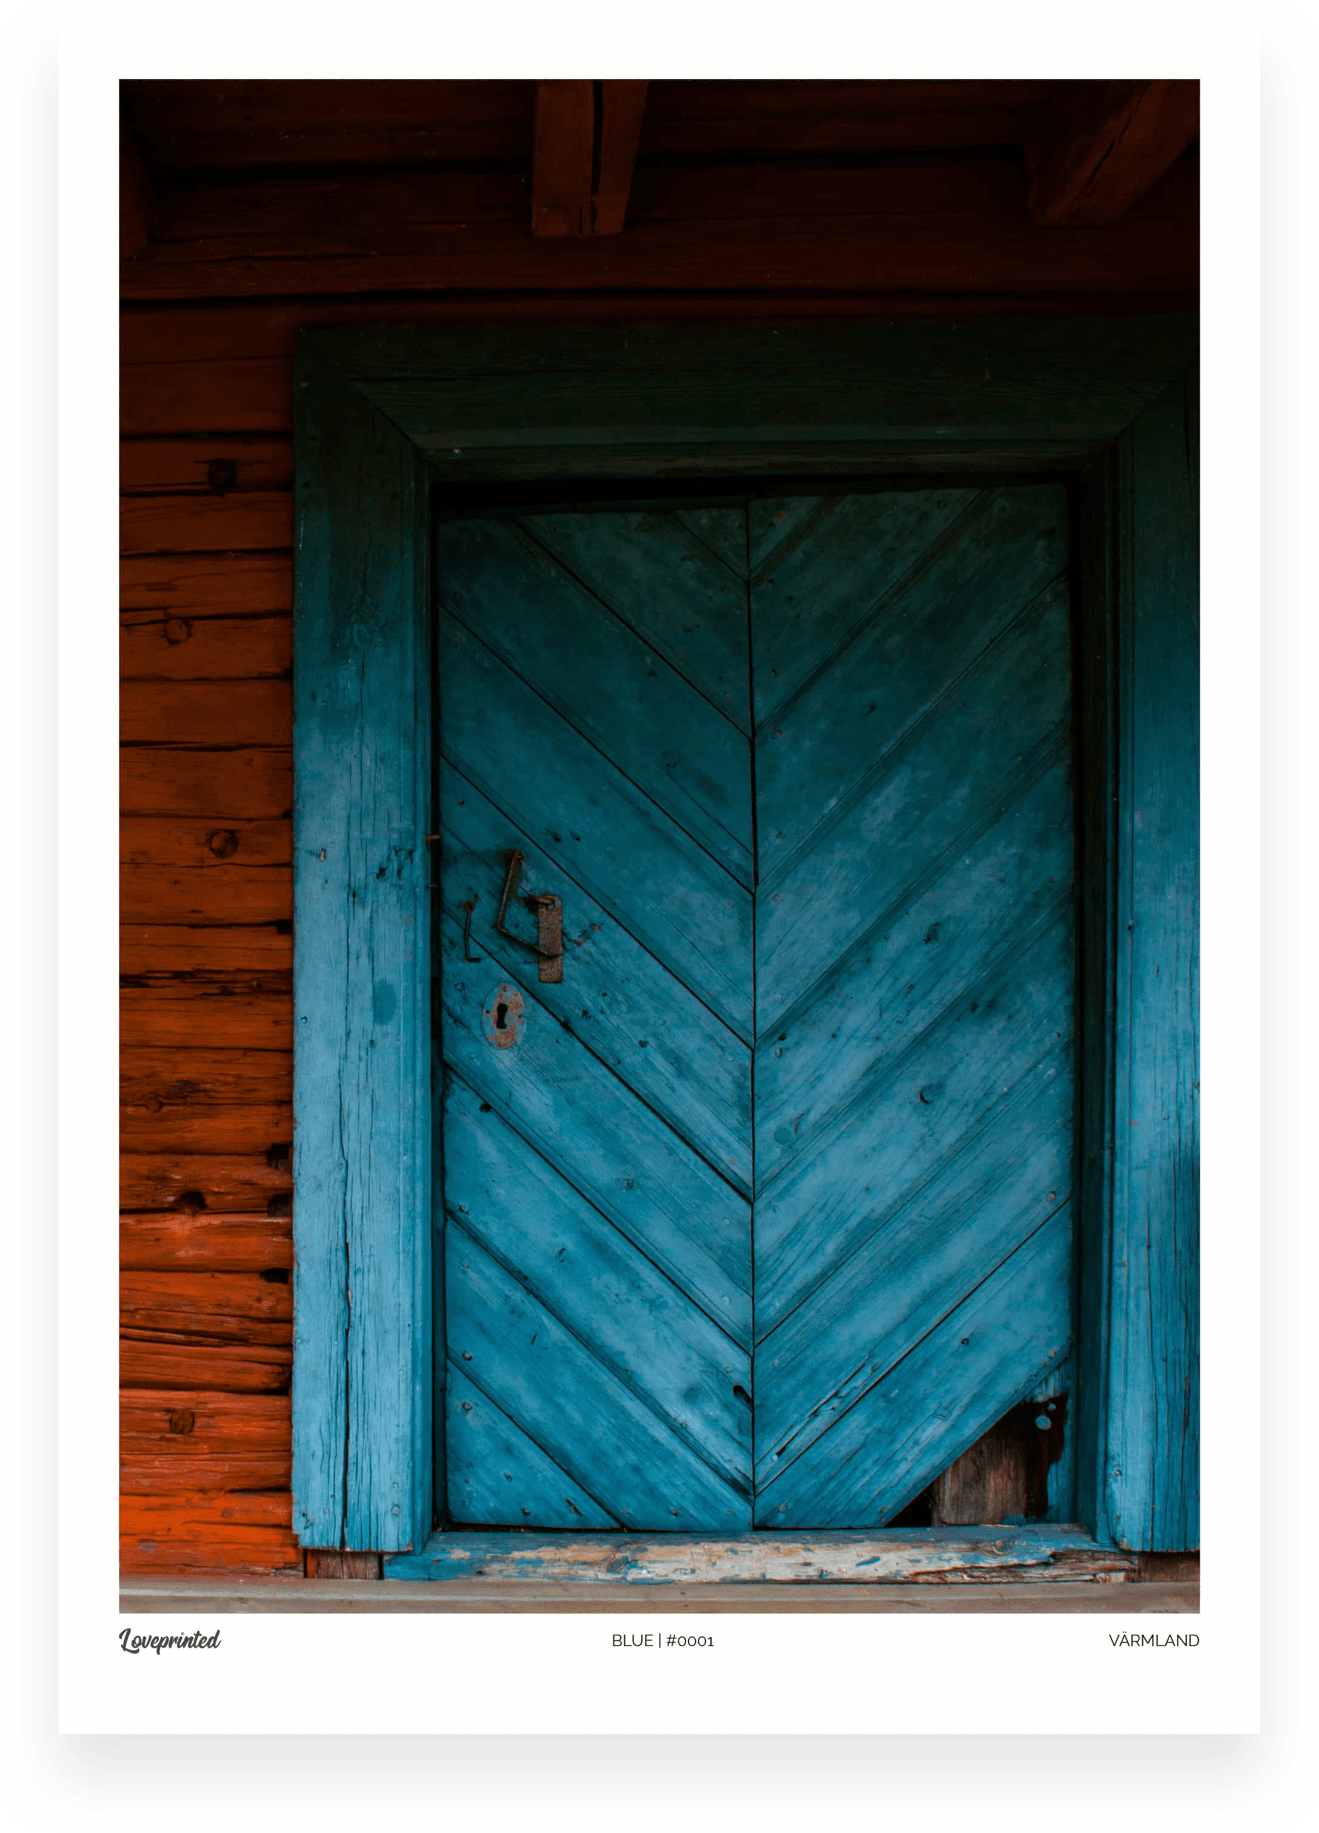 Blue | An Image of an old blue Swedish door made by Loveprinted